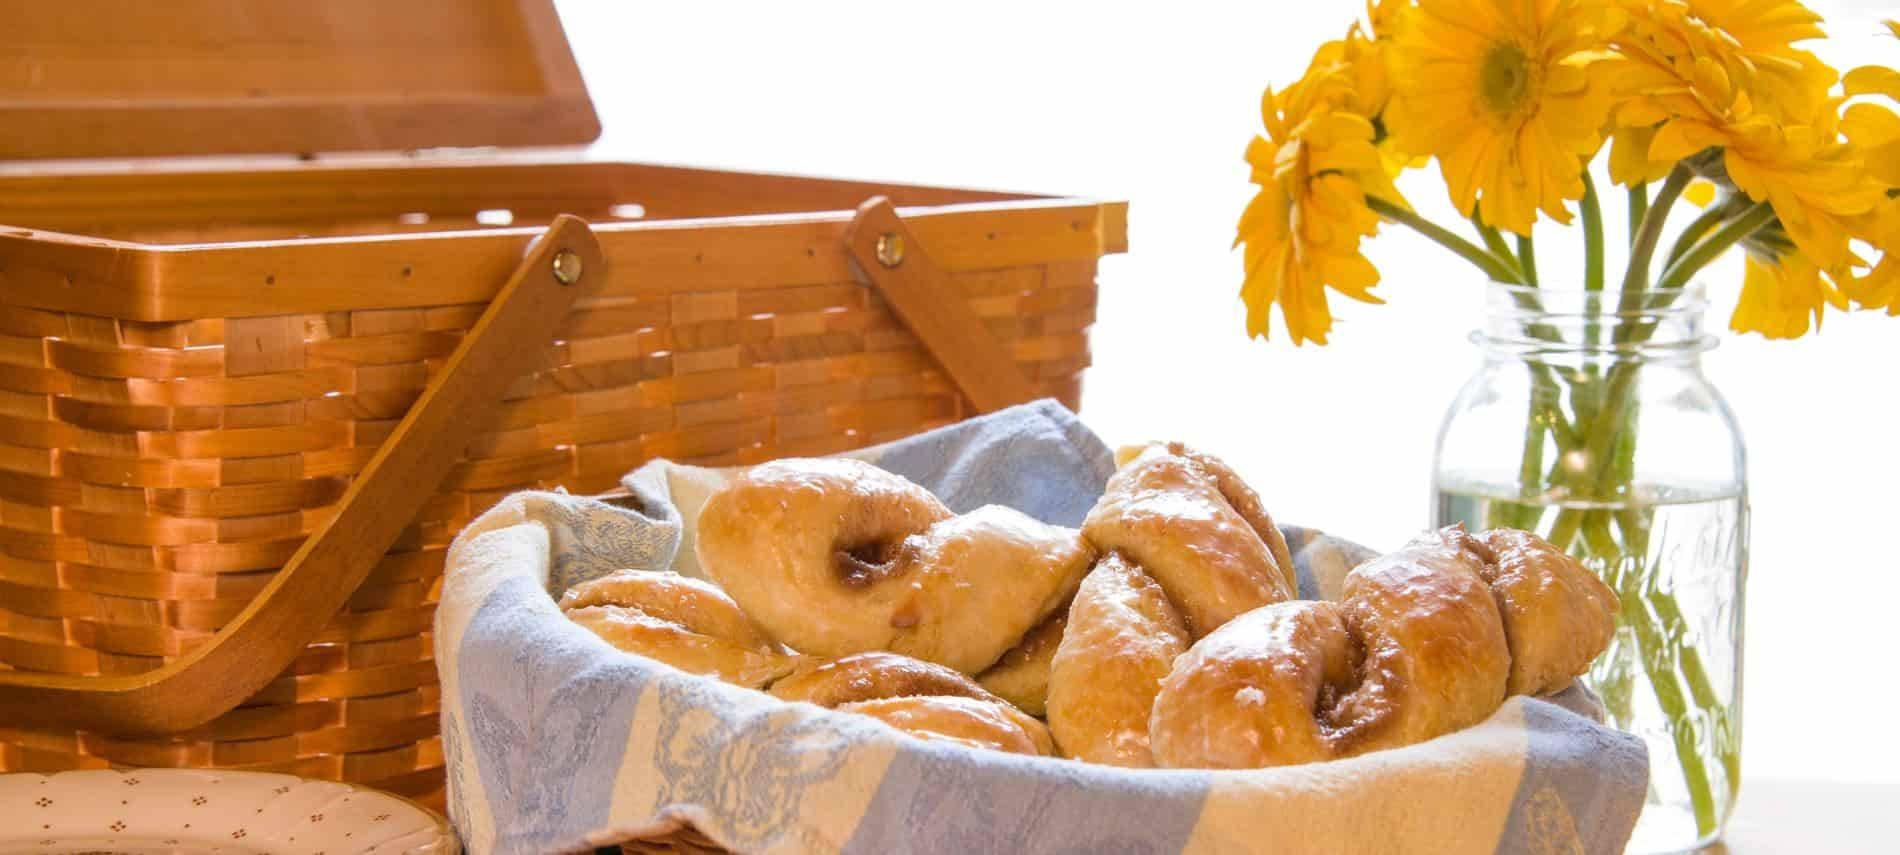 Wooden picnic basket next to a basket of fresh glazed twisted rolls and a glass Mason jar filled with bright yellow flowers